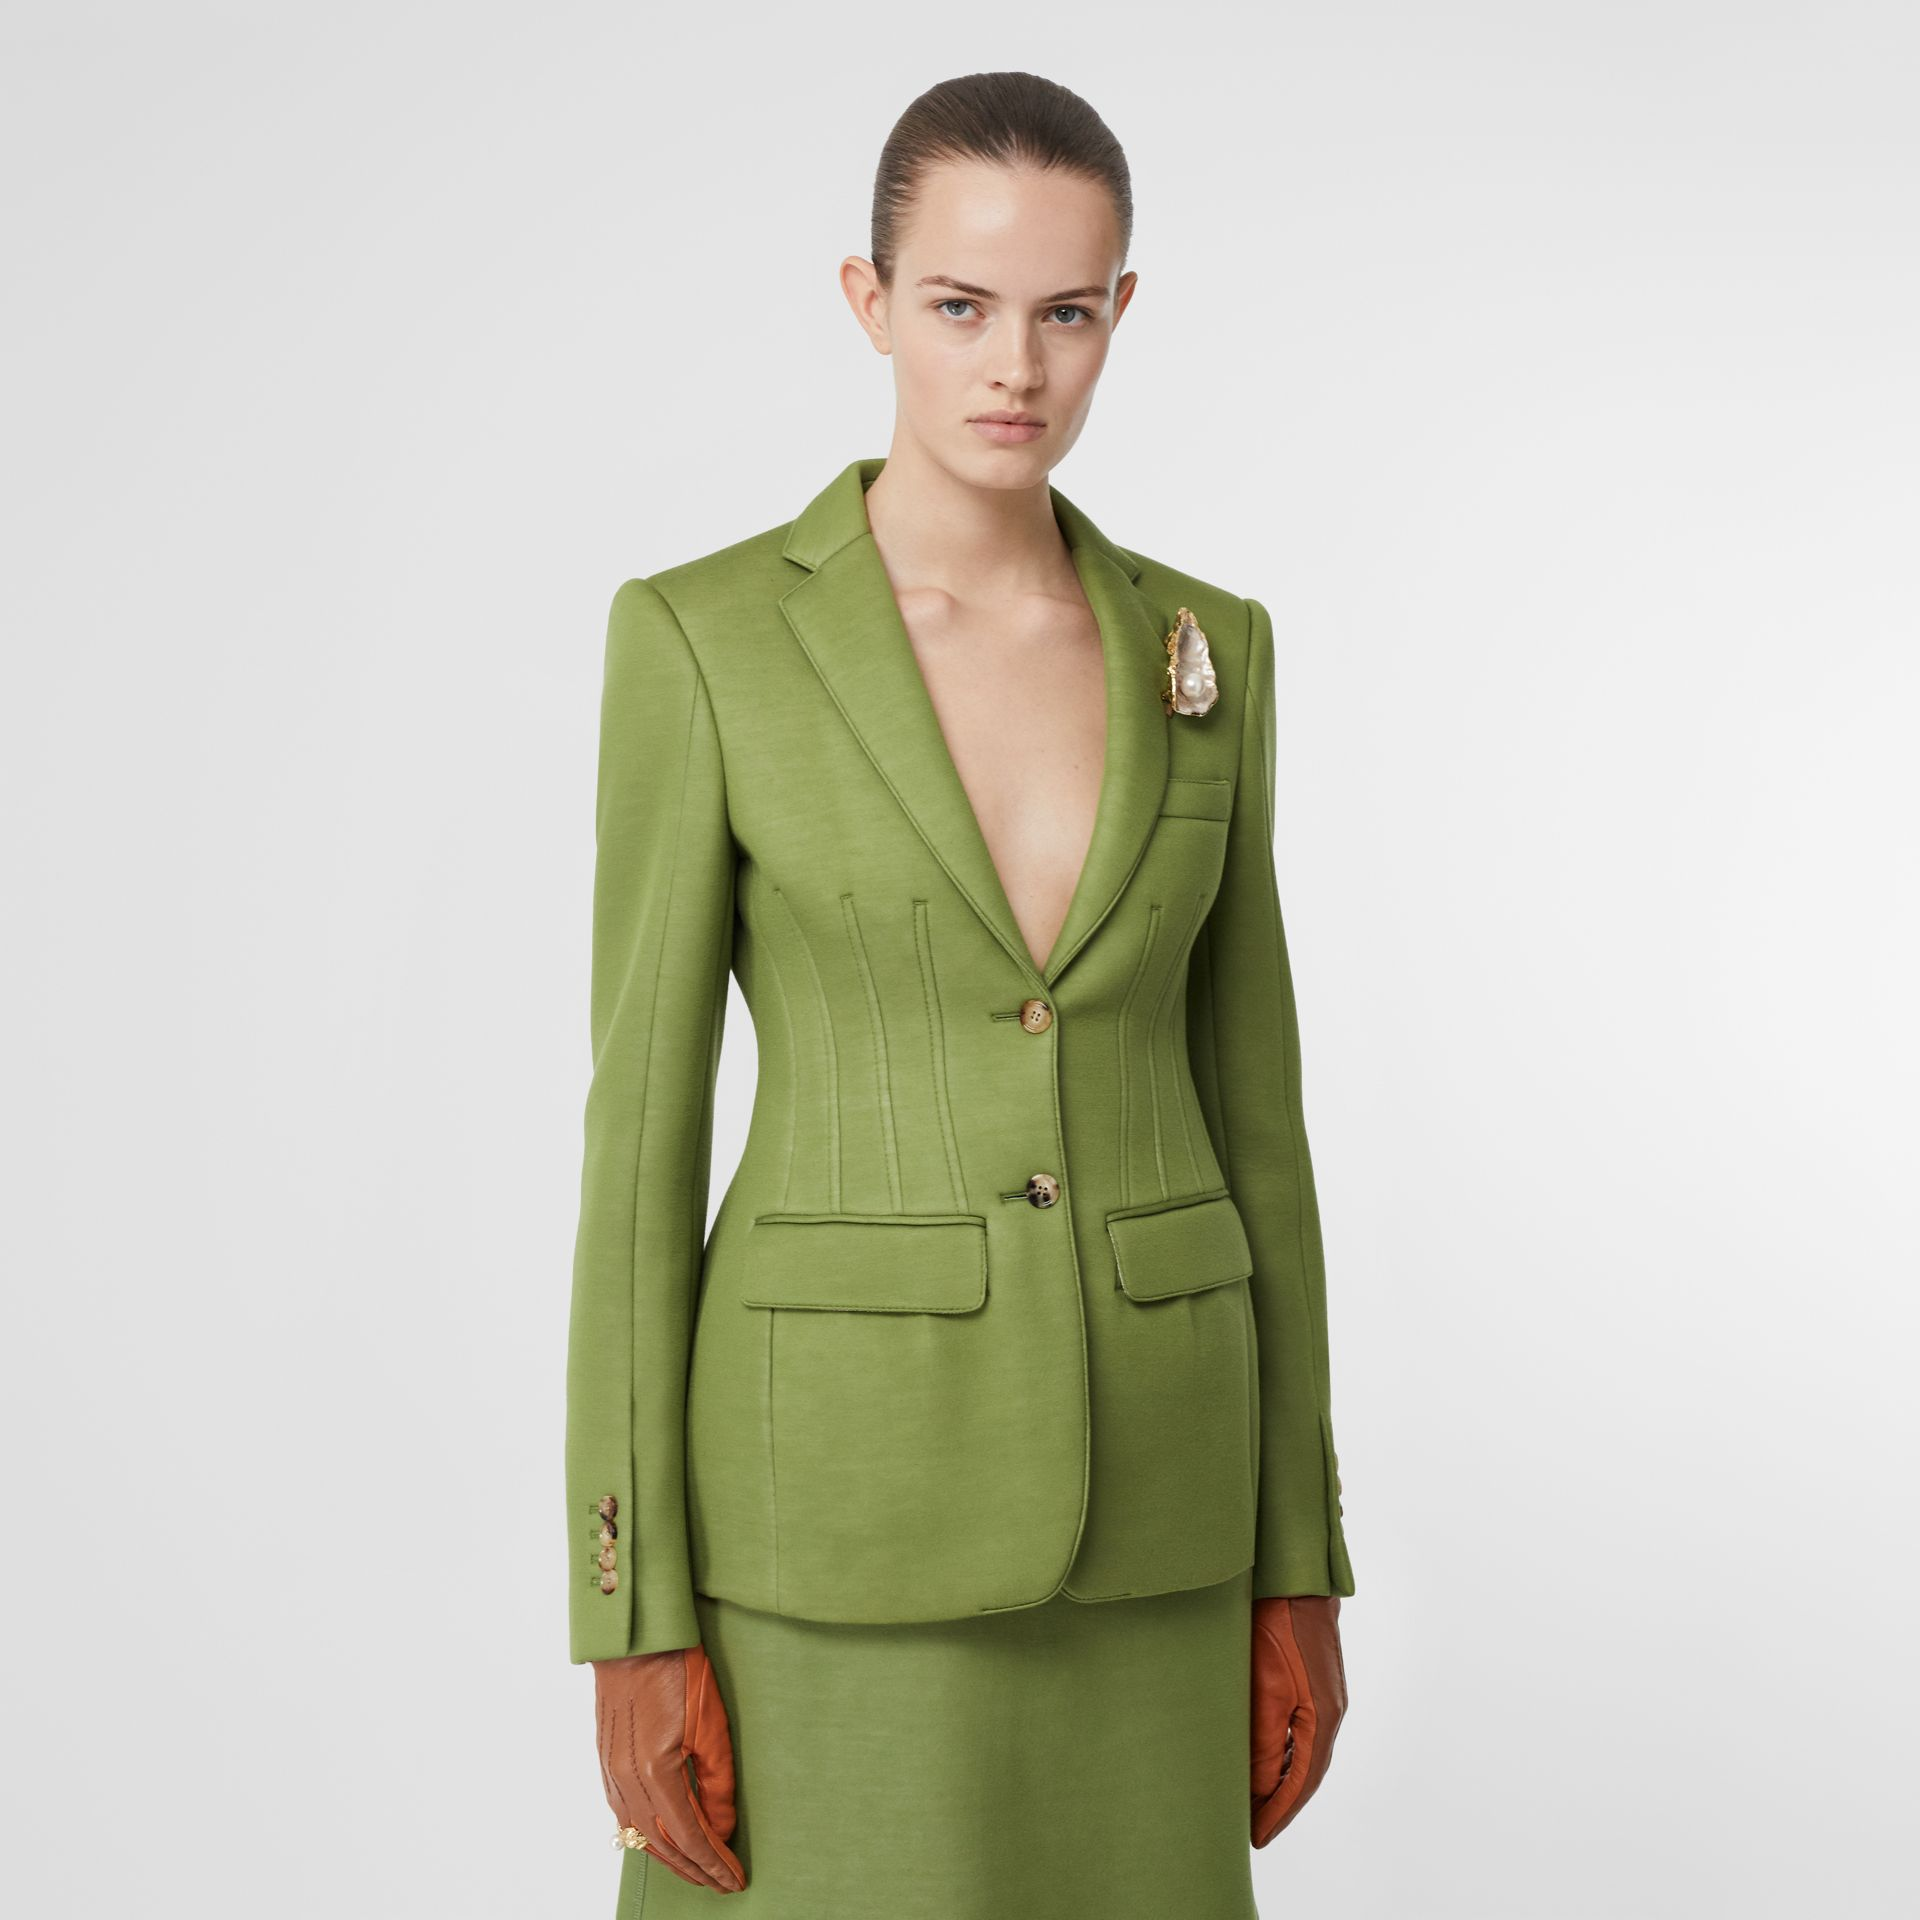 Double-faced Neoprene Tailored Jacket in Cedar Green - Women | Burberry - gallery image 4